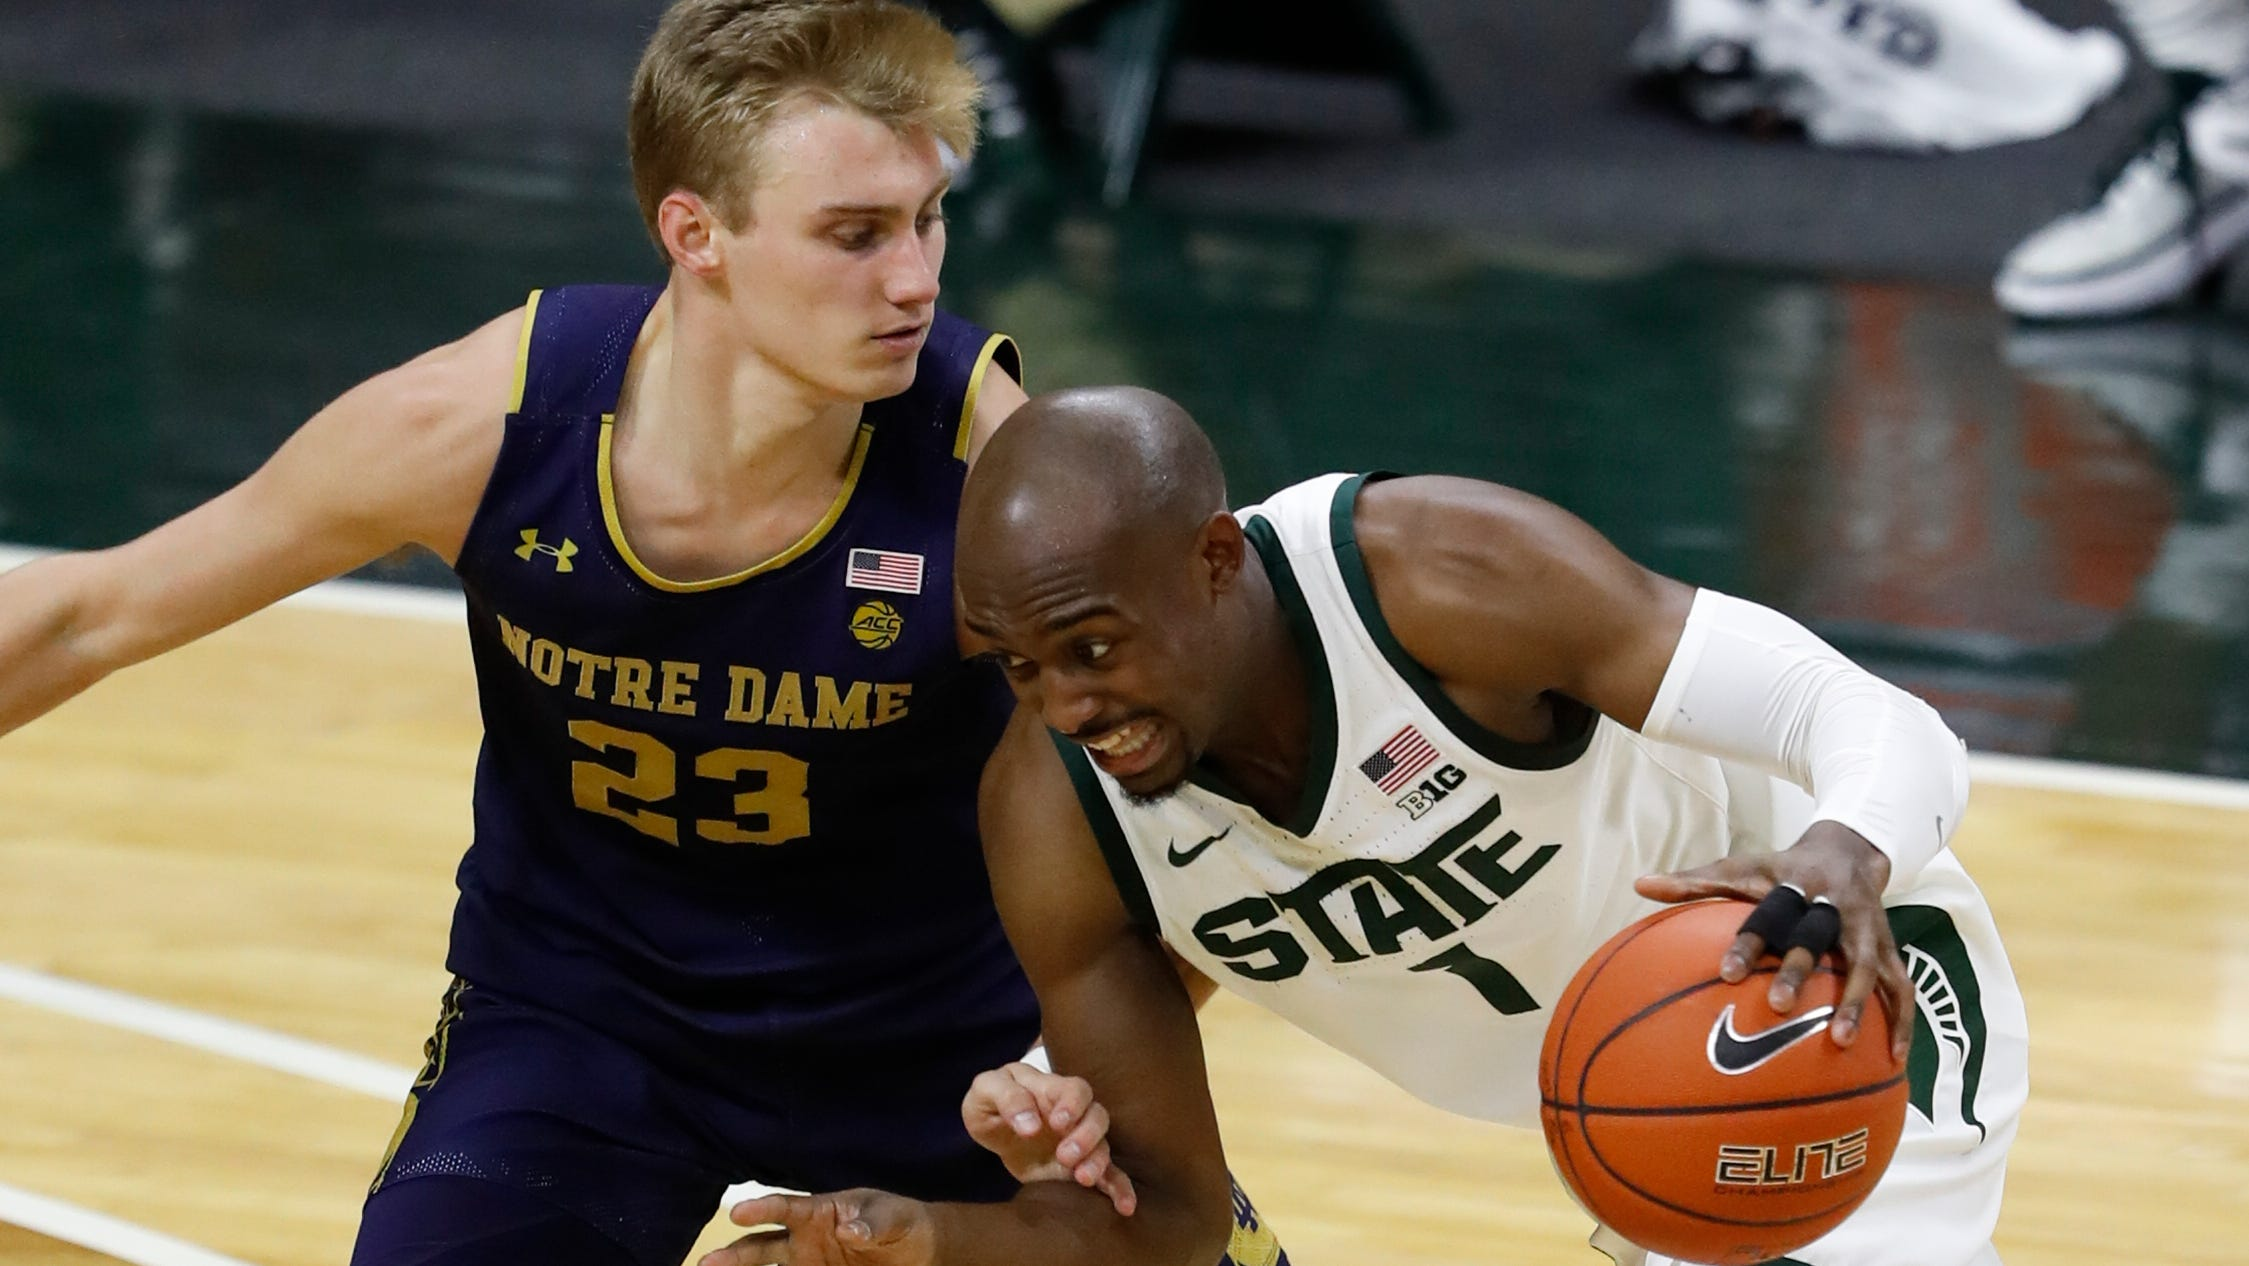 Notre Dame's Dane Goodwin ready for shot at Ohio State